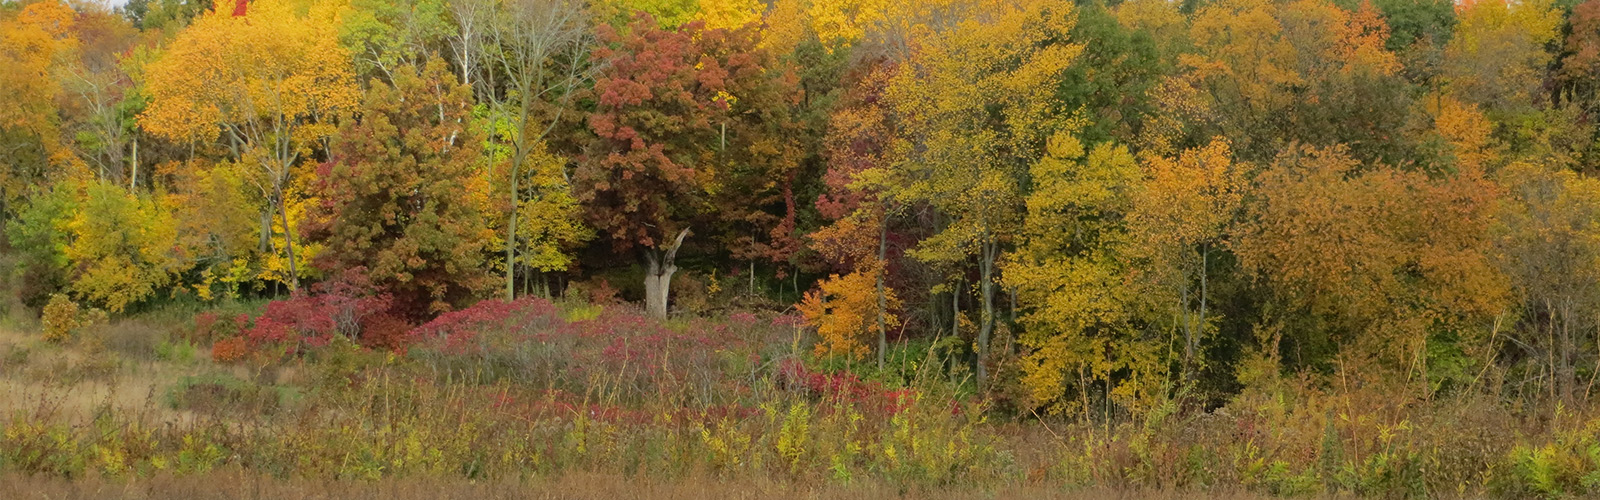 Woodland meets prairie with both in fall colors of red, orange, and yellow.